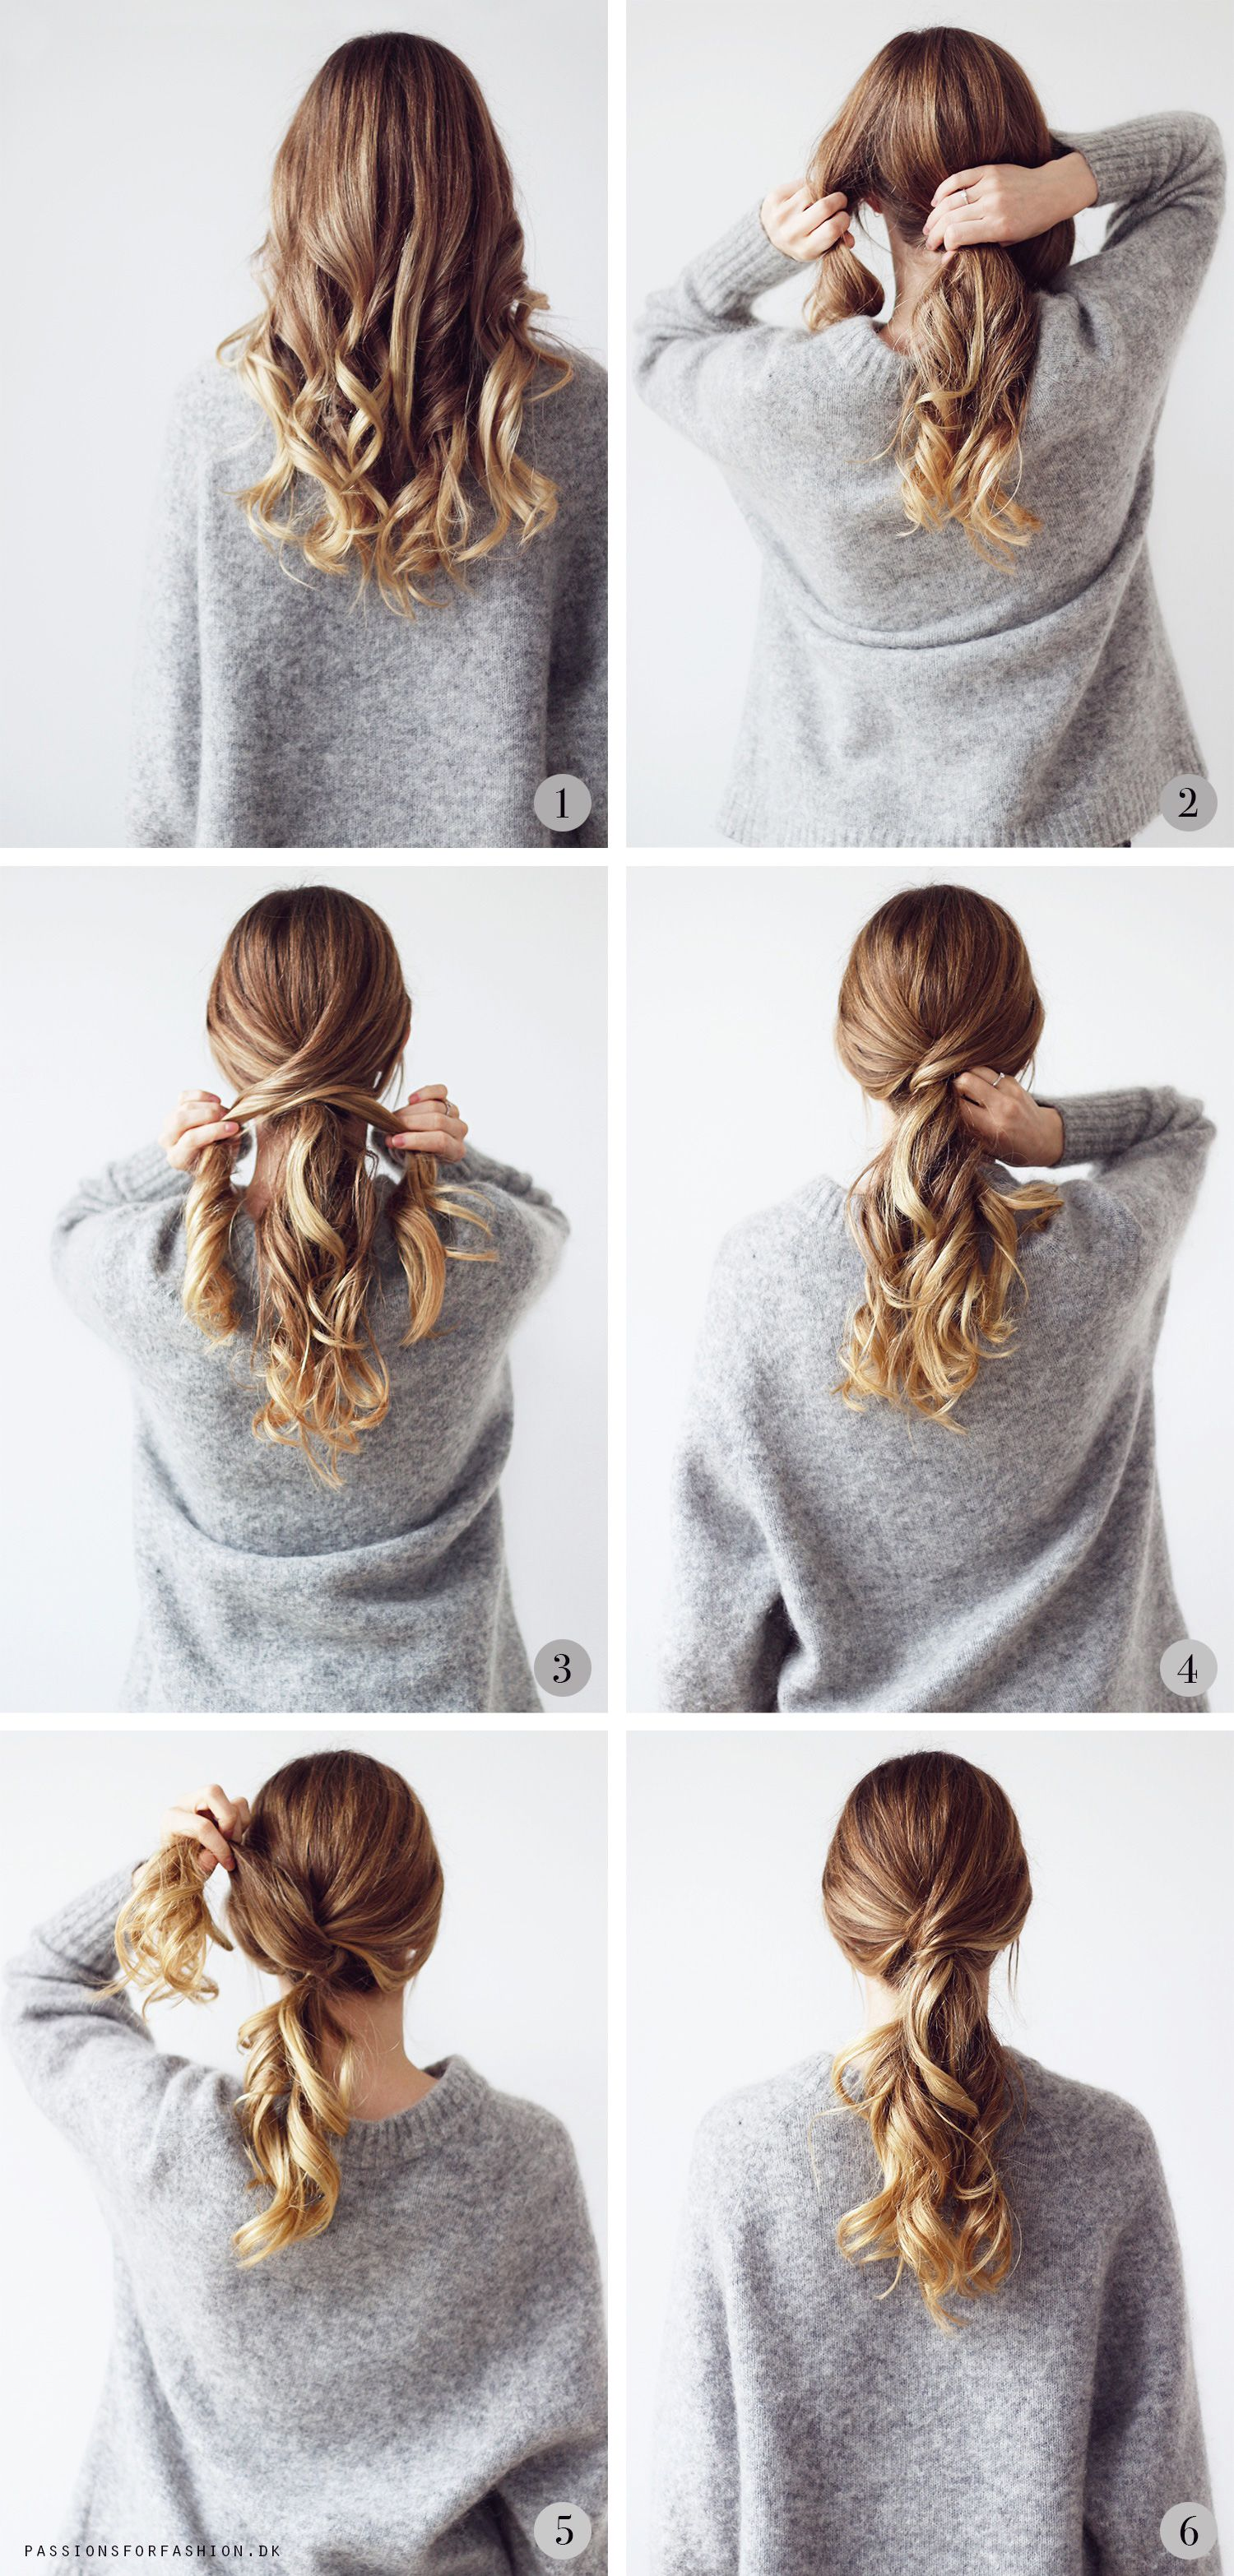 How To Do A Ponytail With Bobypins Only / Curly Hair